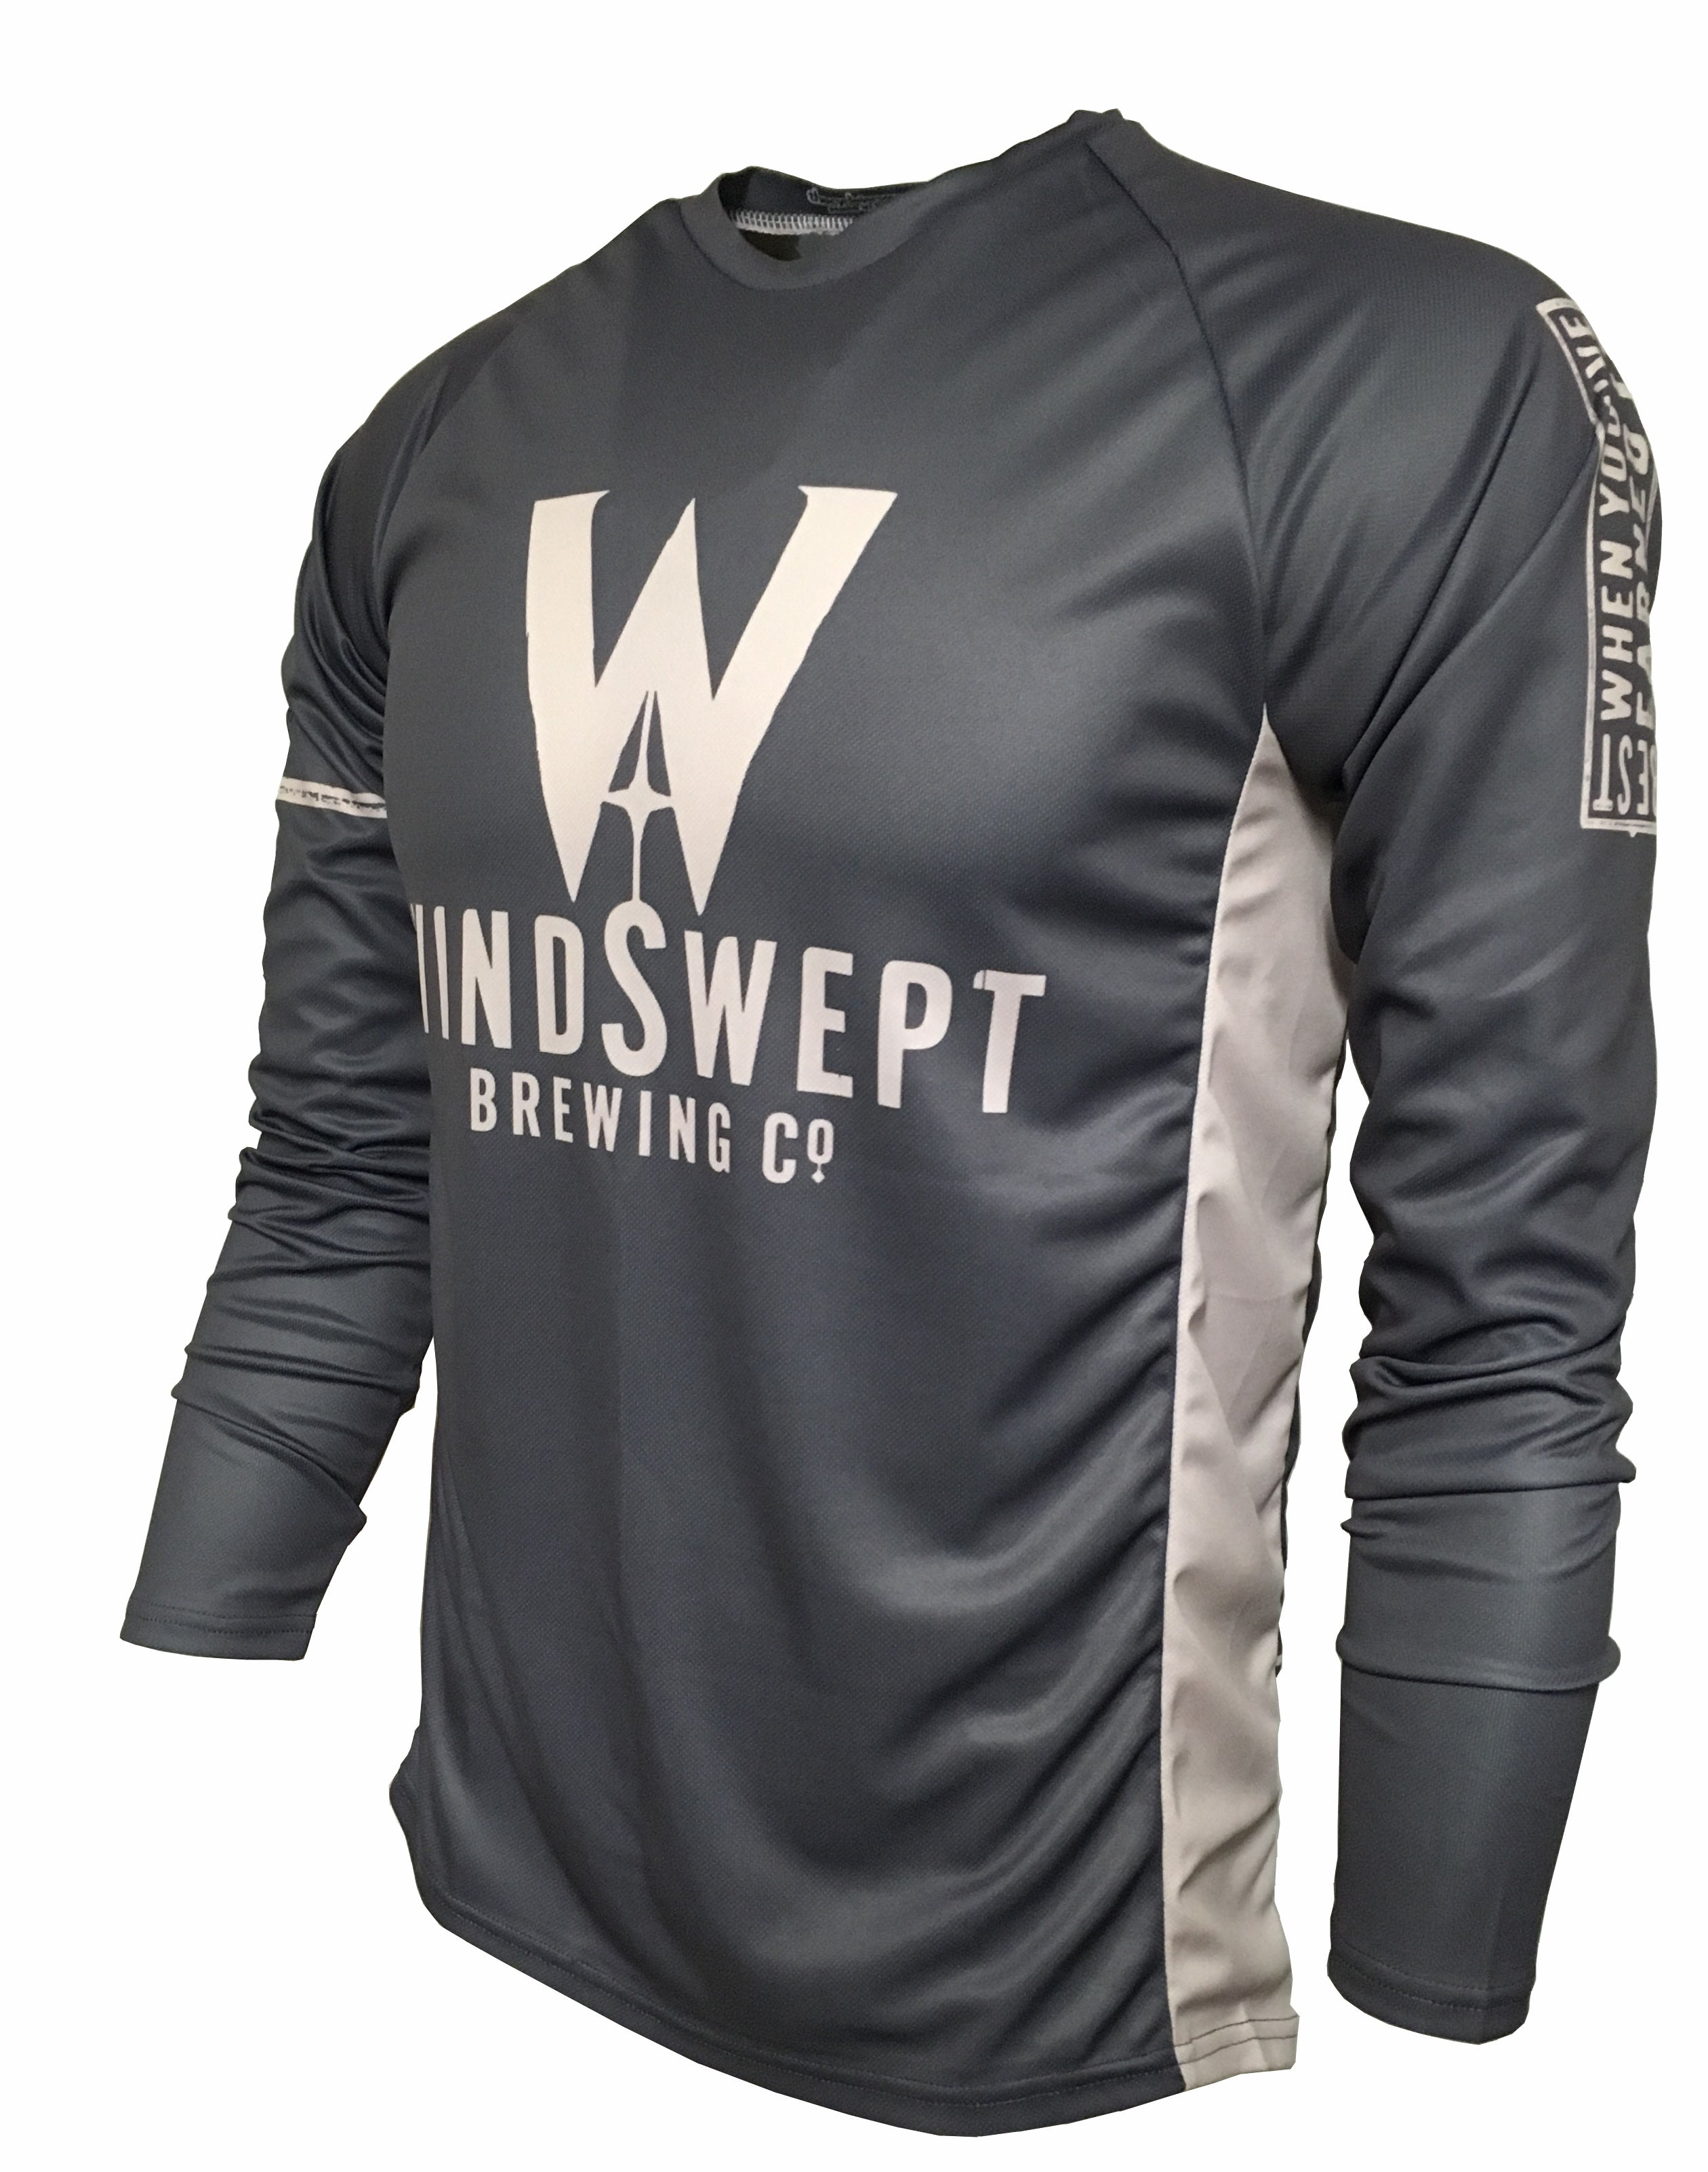 Windswept Brewing Enduro jersey Front